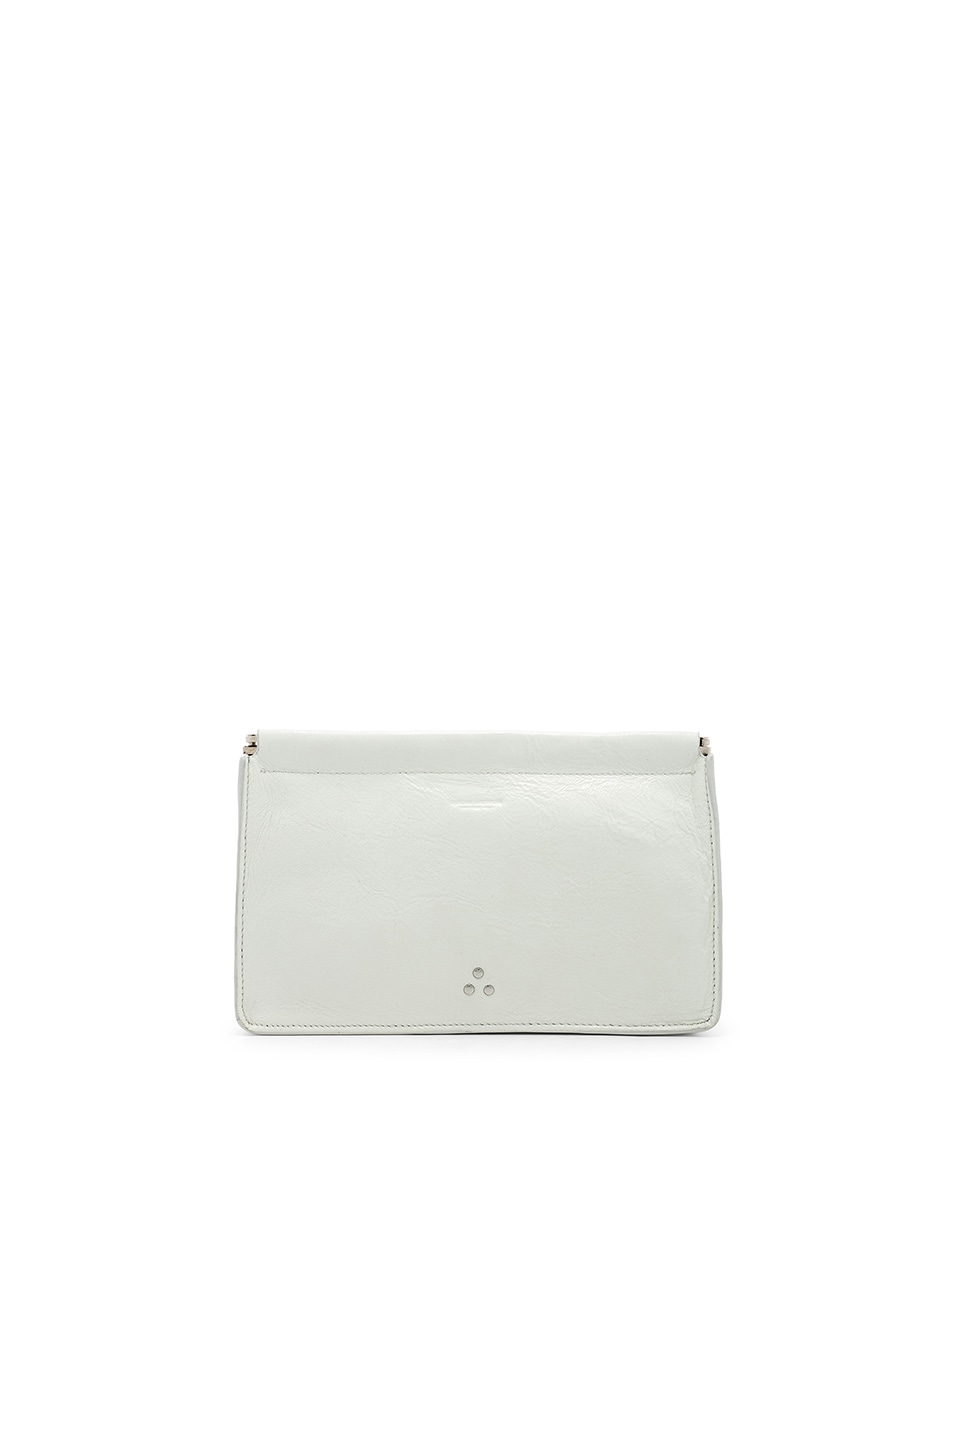 Jerome Dreyfuss Popoche Clic Clac Large Clutch in Froisse Blanc